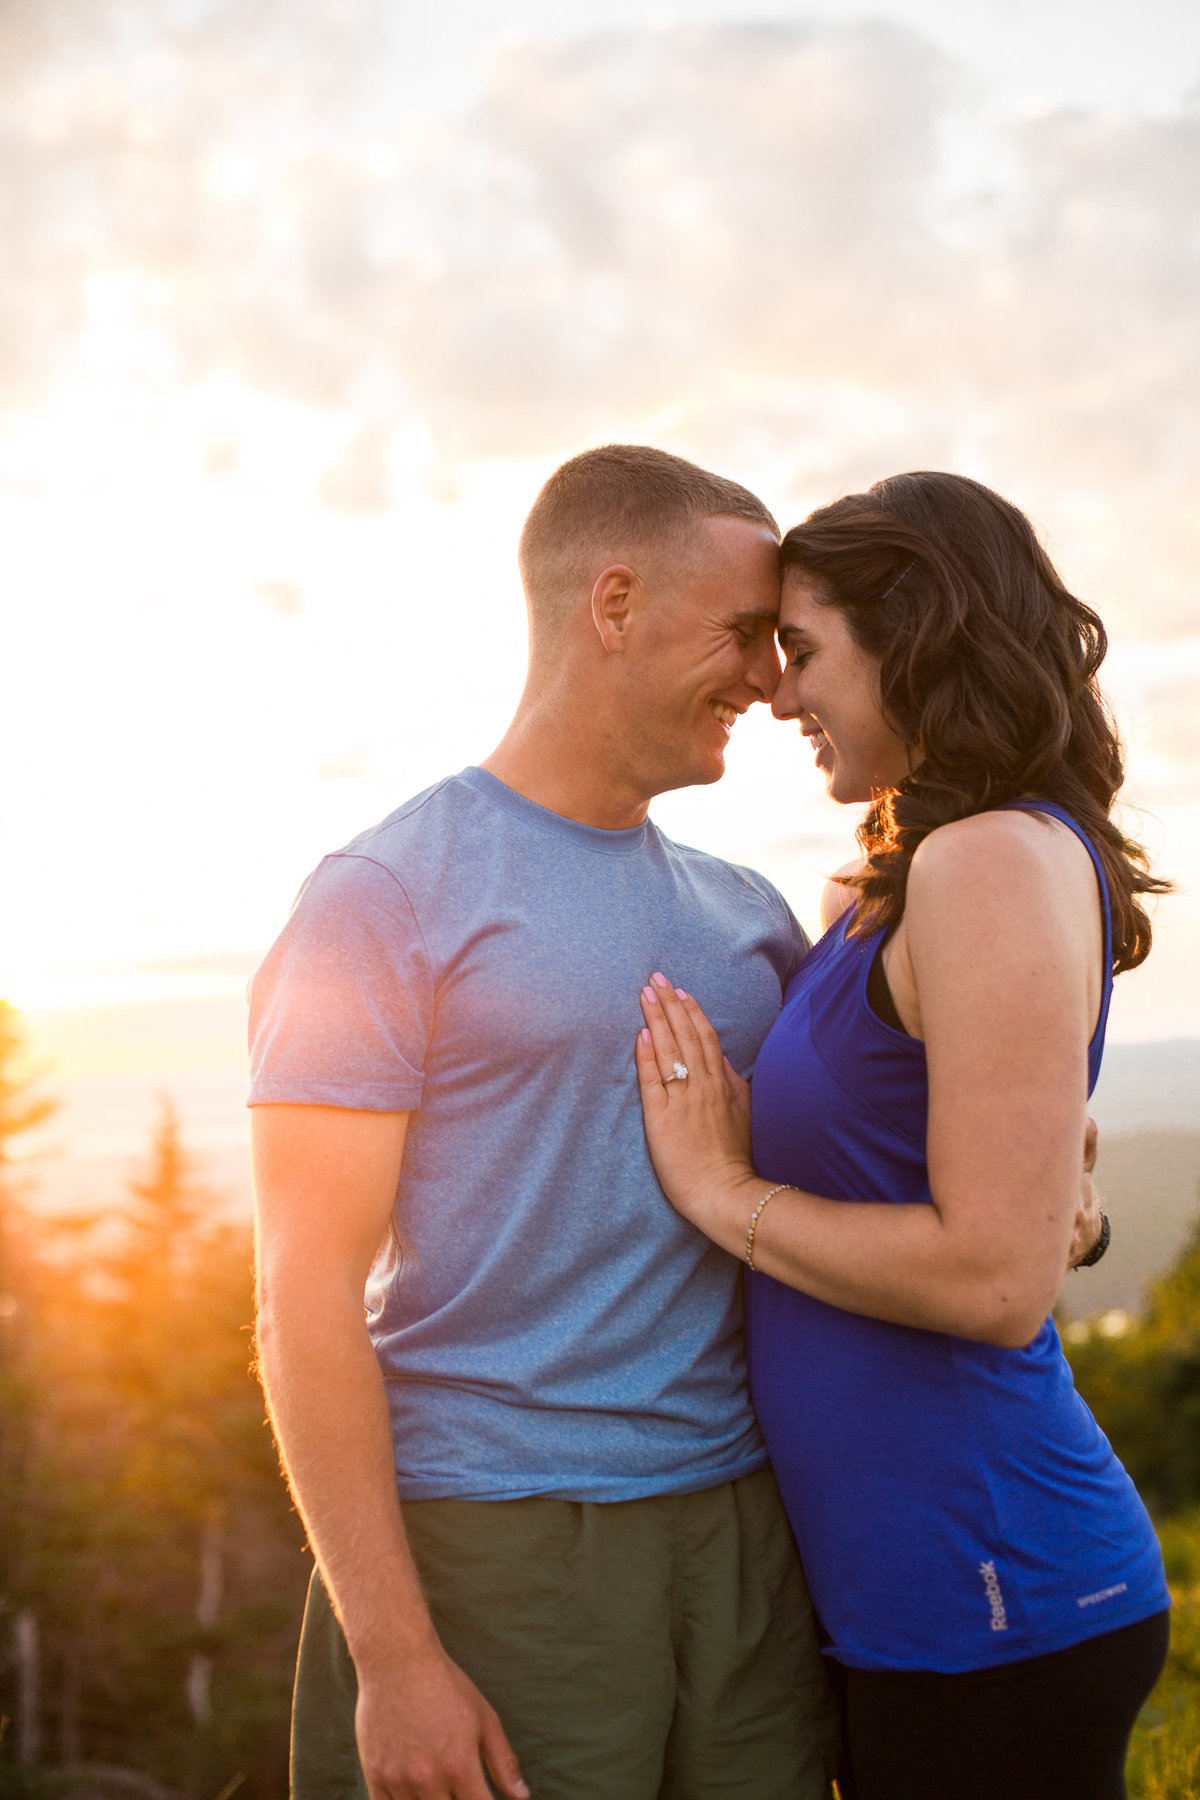 Laura-Klacik-Photography-Engagement-Photos-43